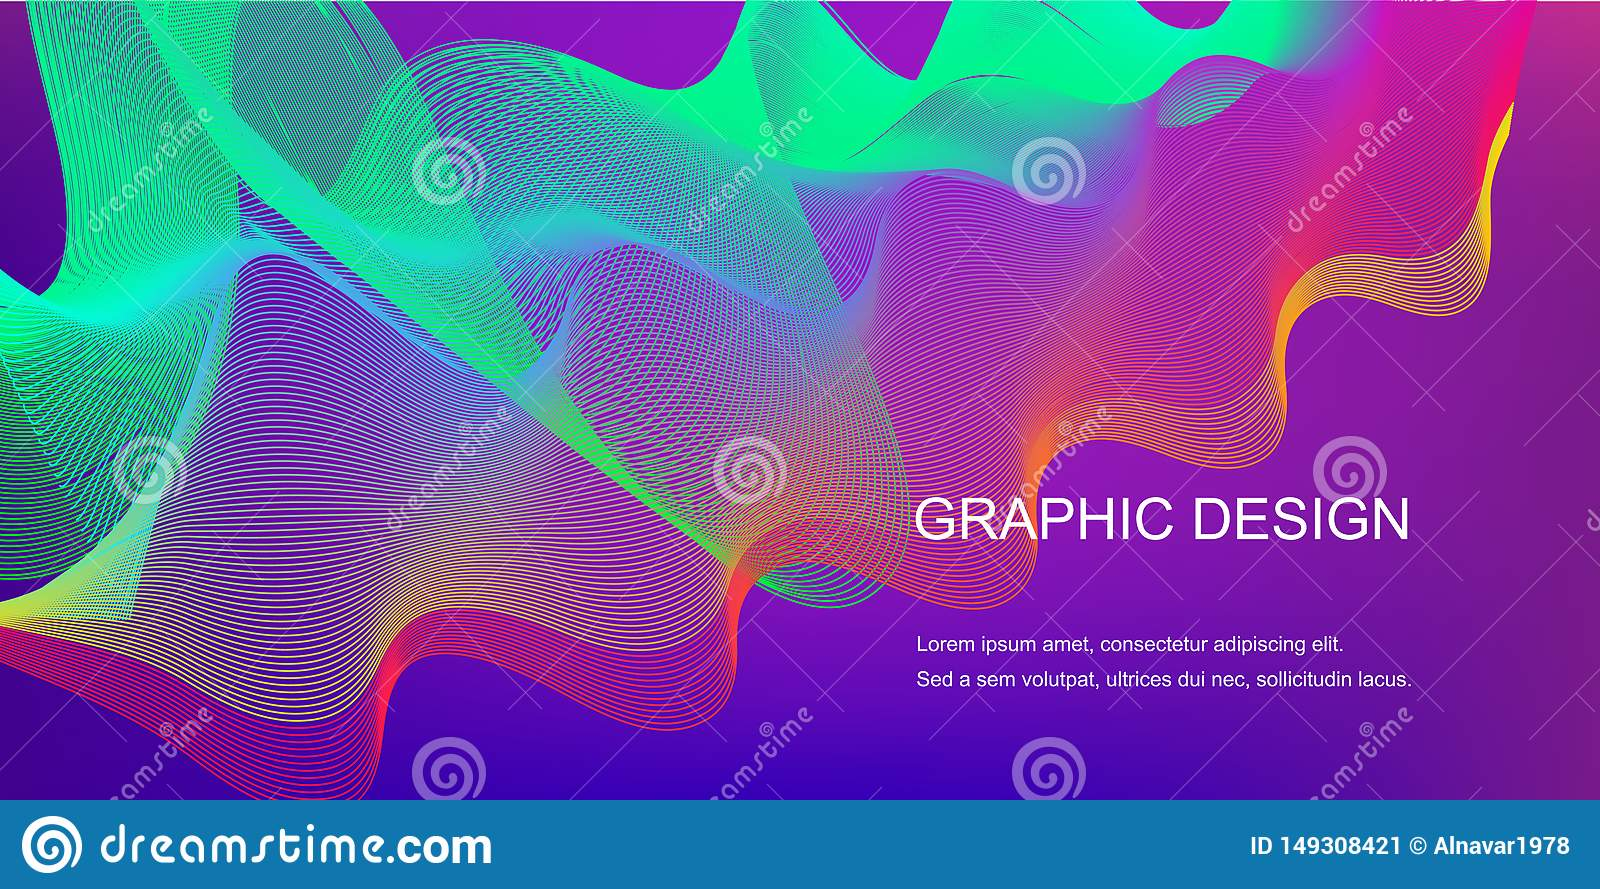 Gradient abstract background with dynamic linear waves